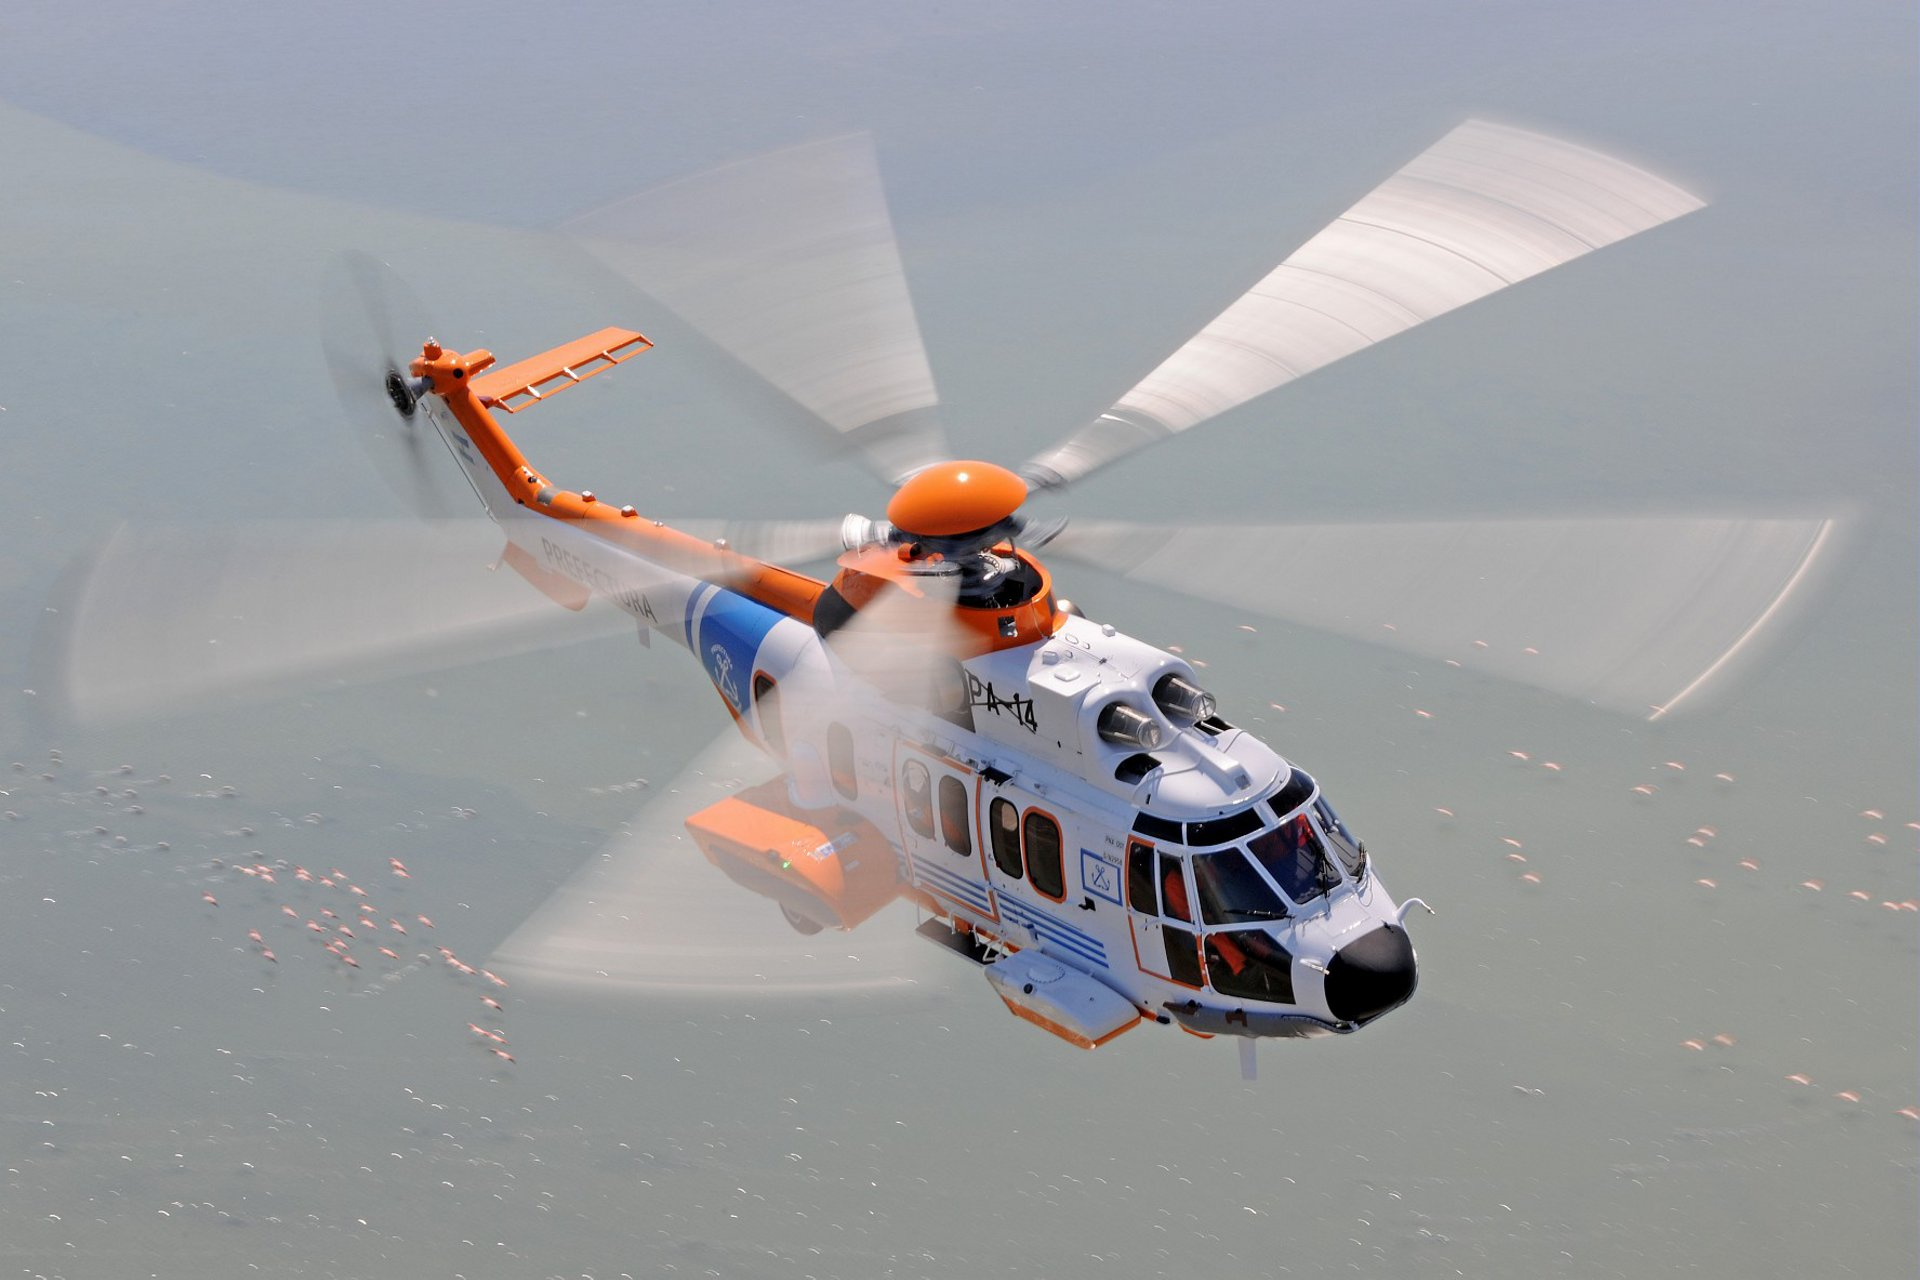 The H225 extensive range allow to fly to zones far from the coast and to operate day and night for rescue operations in extreme weather conditions